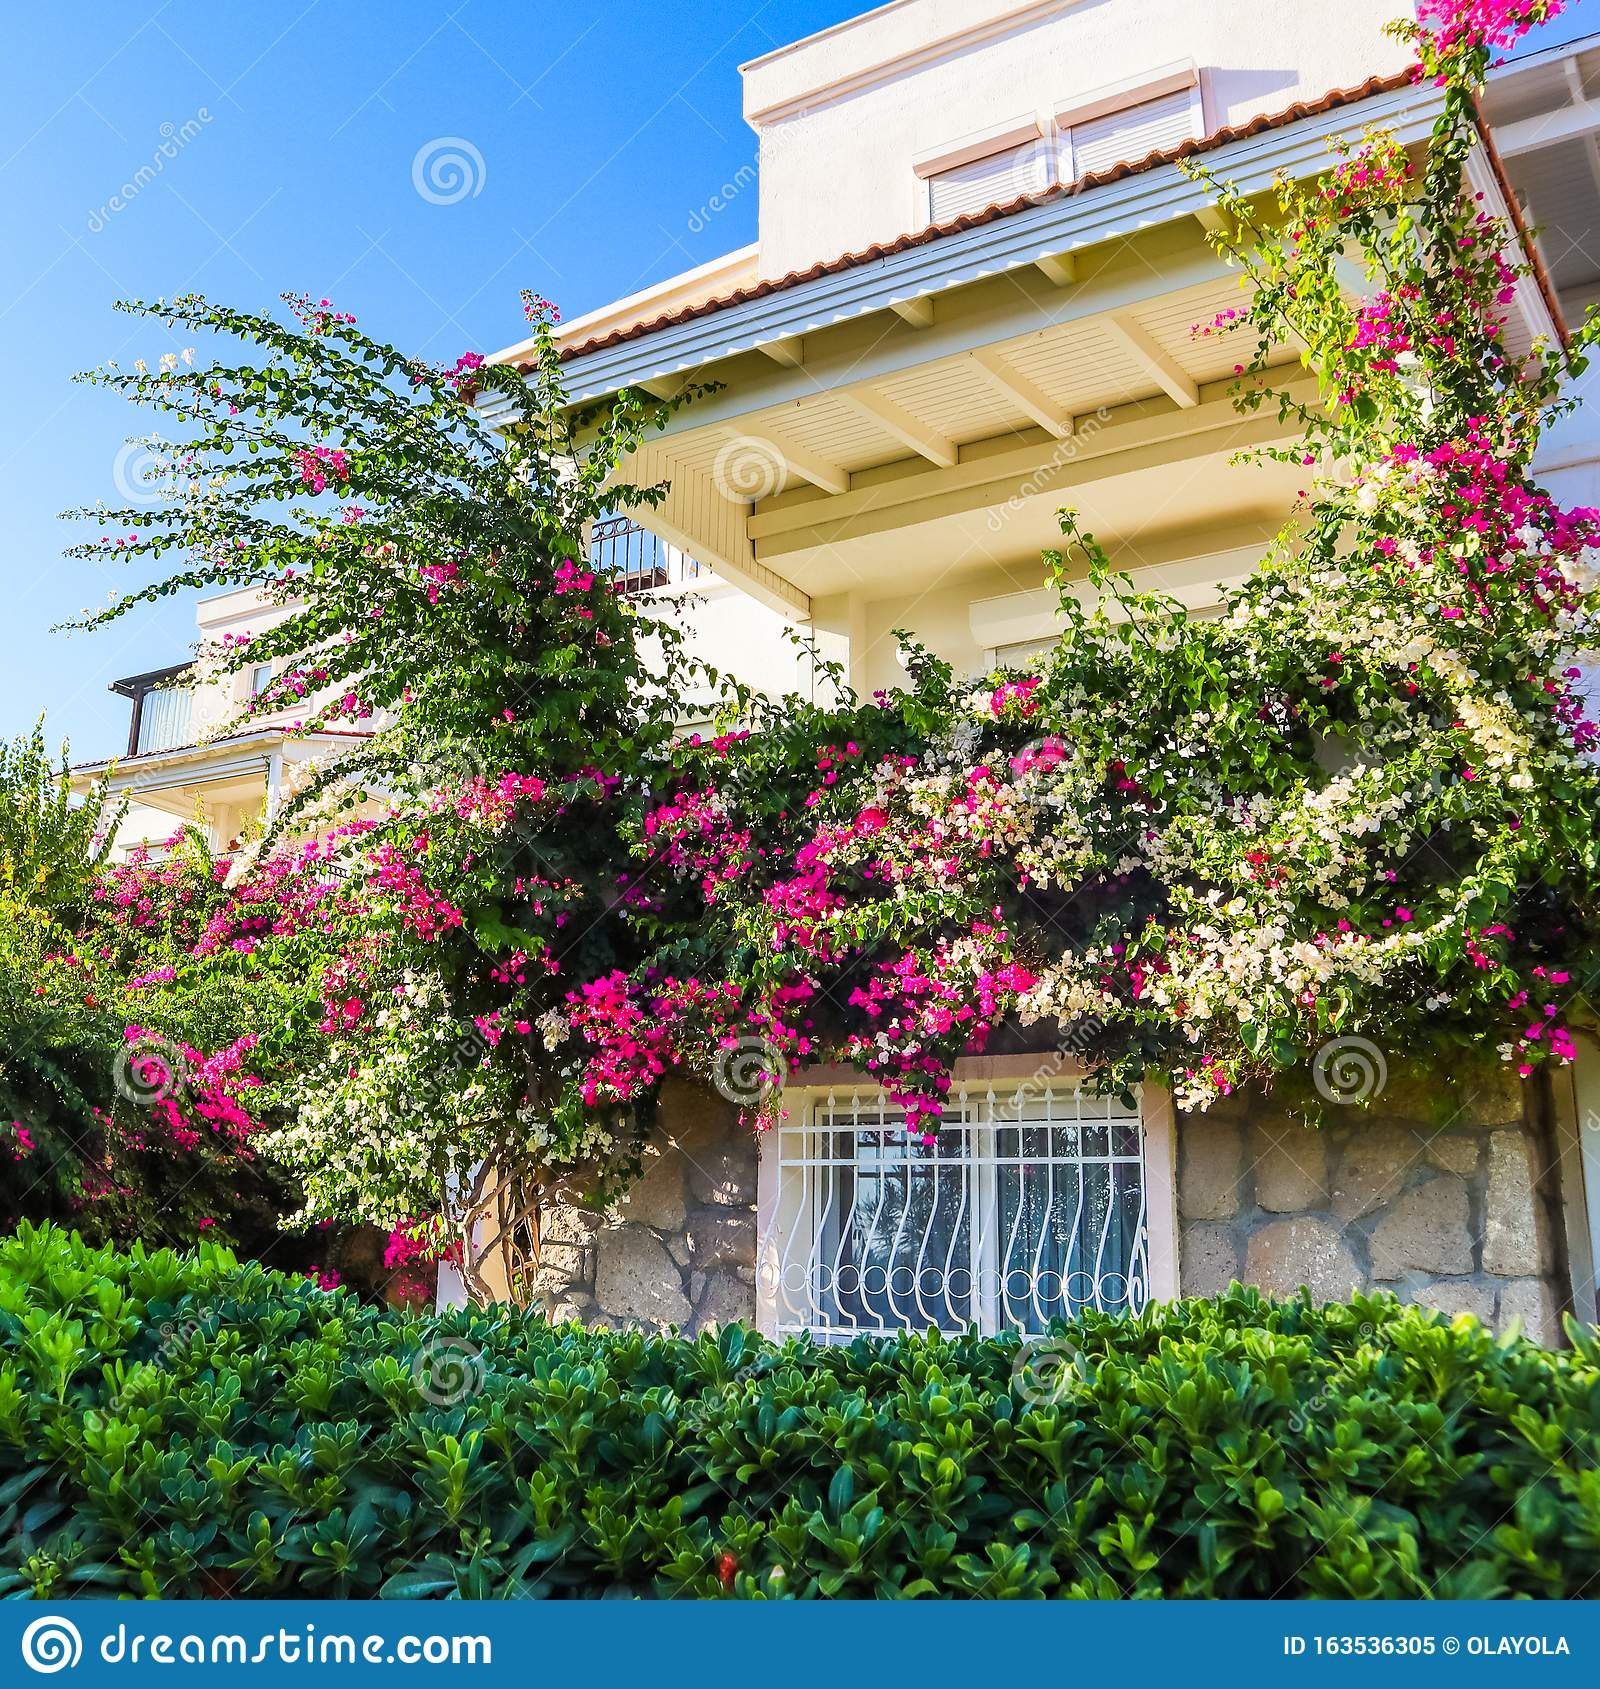 Mediterranean Plants In The Garden And Beautiful Pink And White